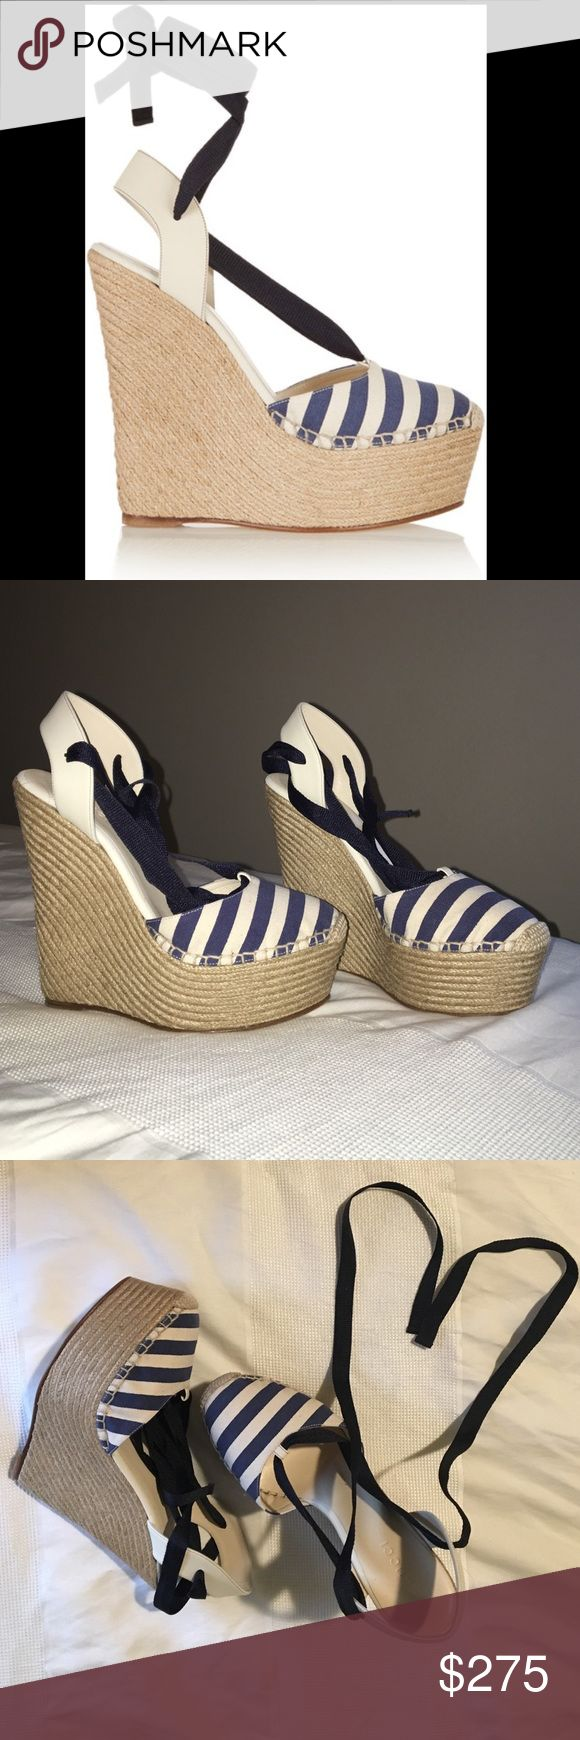 Gucci Sepang St. Stripe Wedges Striped canvas and leather wedge, lace up espadrille. Brand new still in box, never worn. Gucci Shoes Wedges